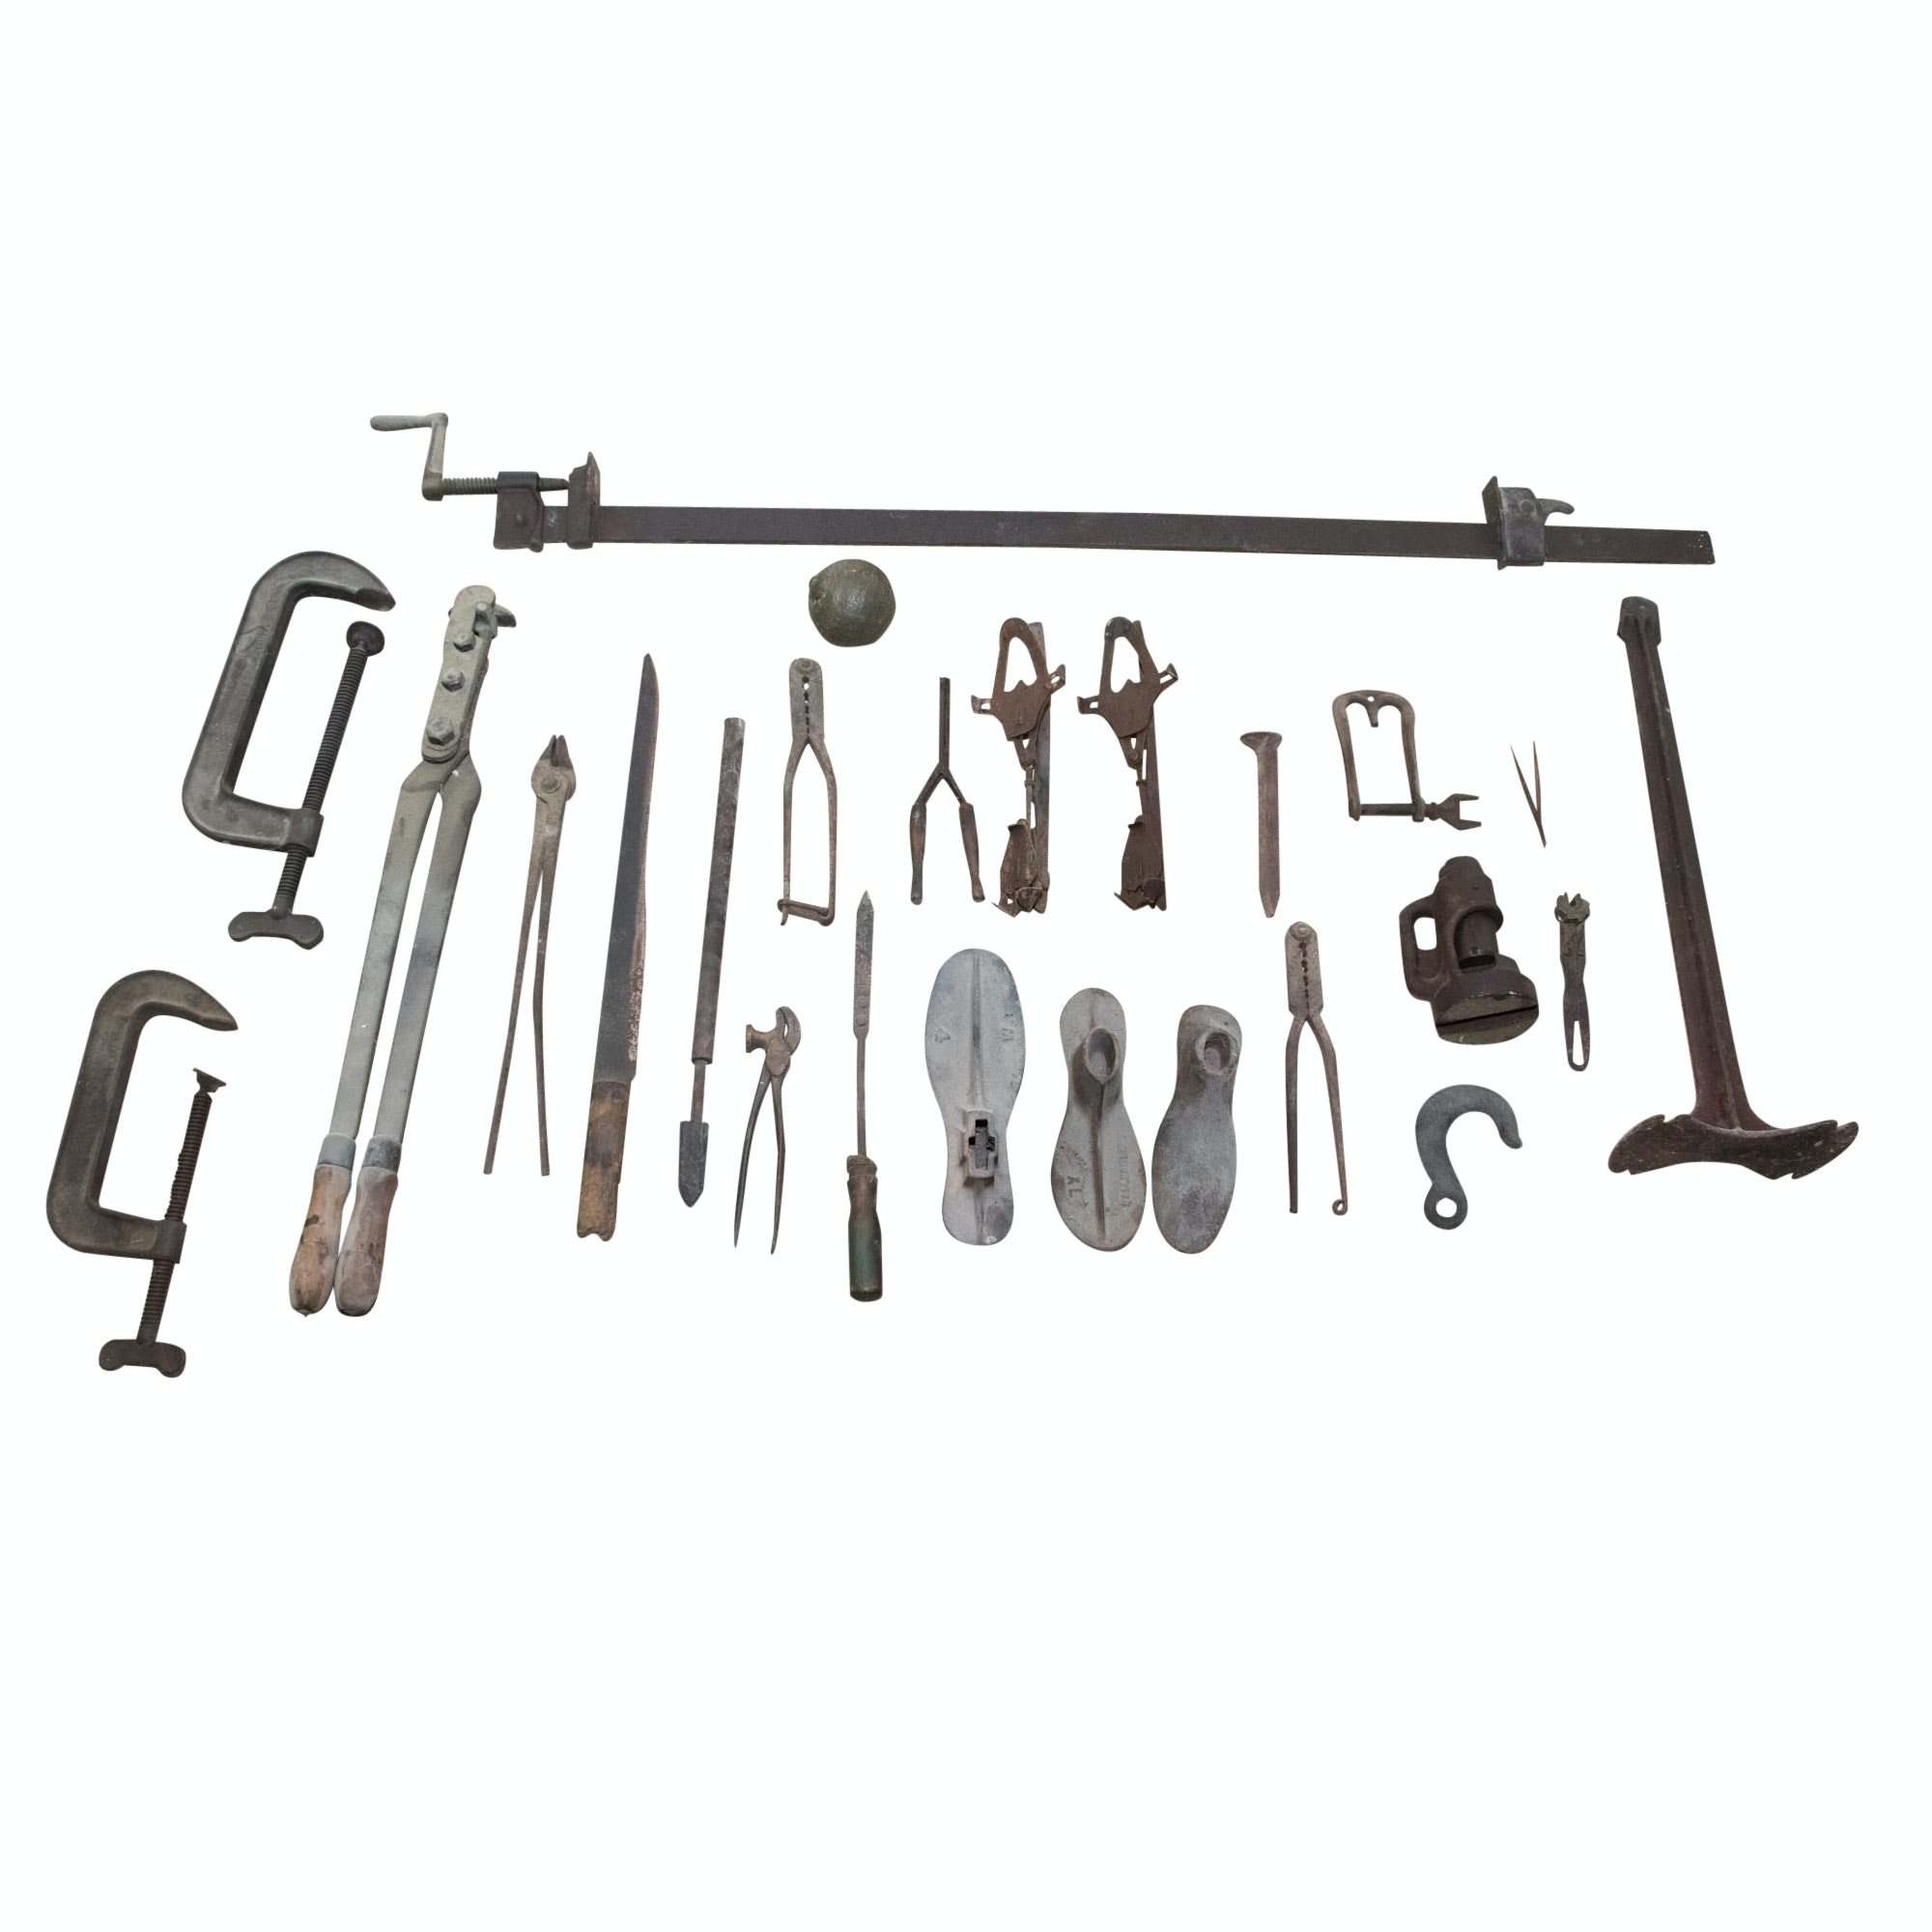 Antique Iron Tool Collection